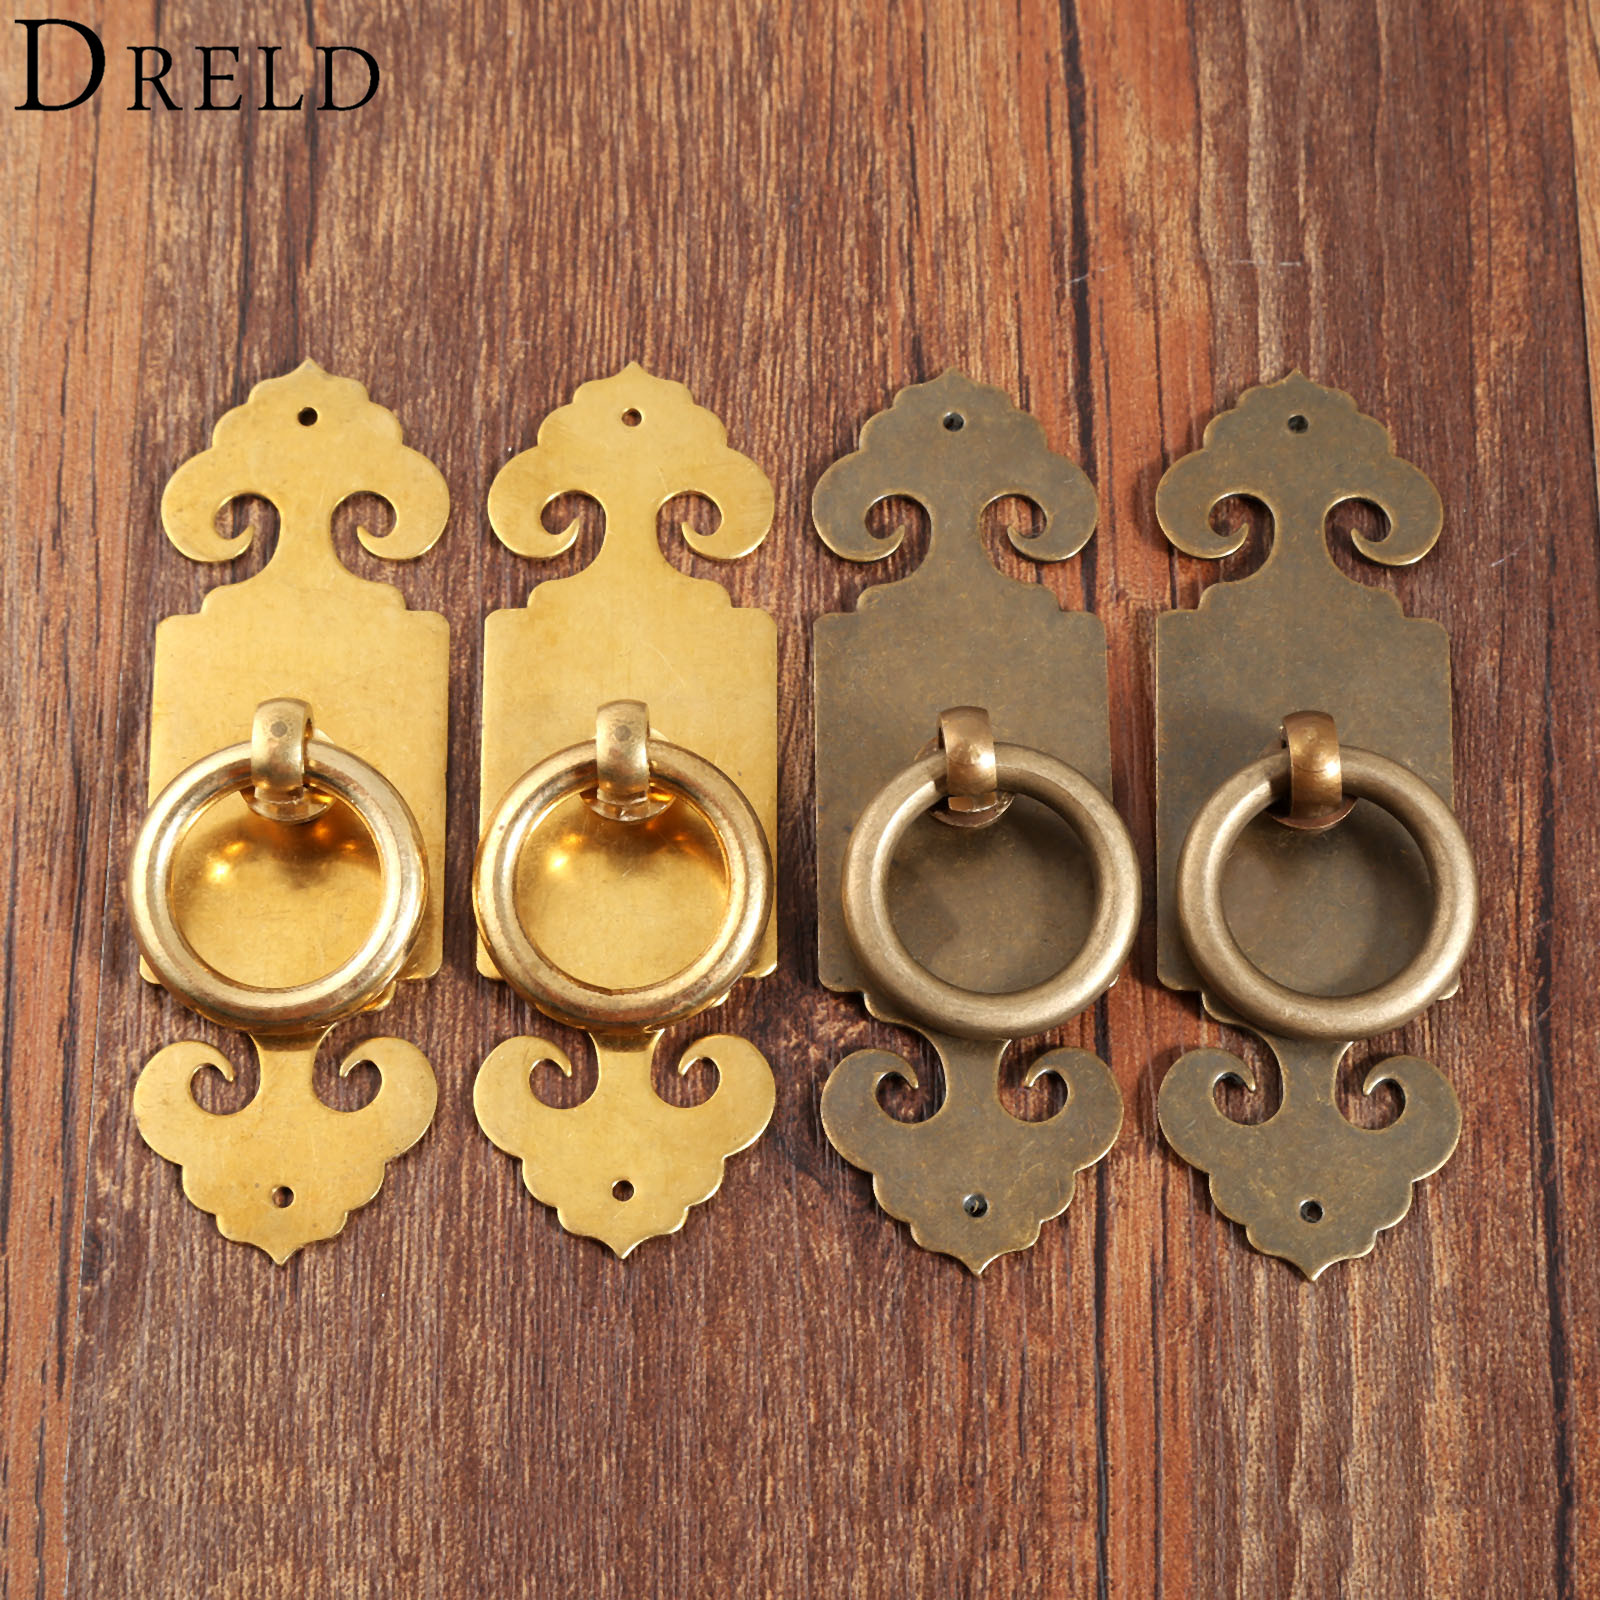 DRELD 2pcs Antique Chinese Pure Copper Door Furniture Handle Brass Lock Cabinet Drawer Pull Handle Knob Furniture Hardware 1Pair free shipping furniture brass handle knob cabinet drawer single hole shoe closet pull wine cooler handle diy household hardware